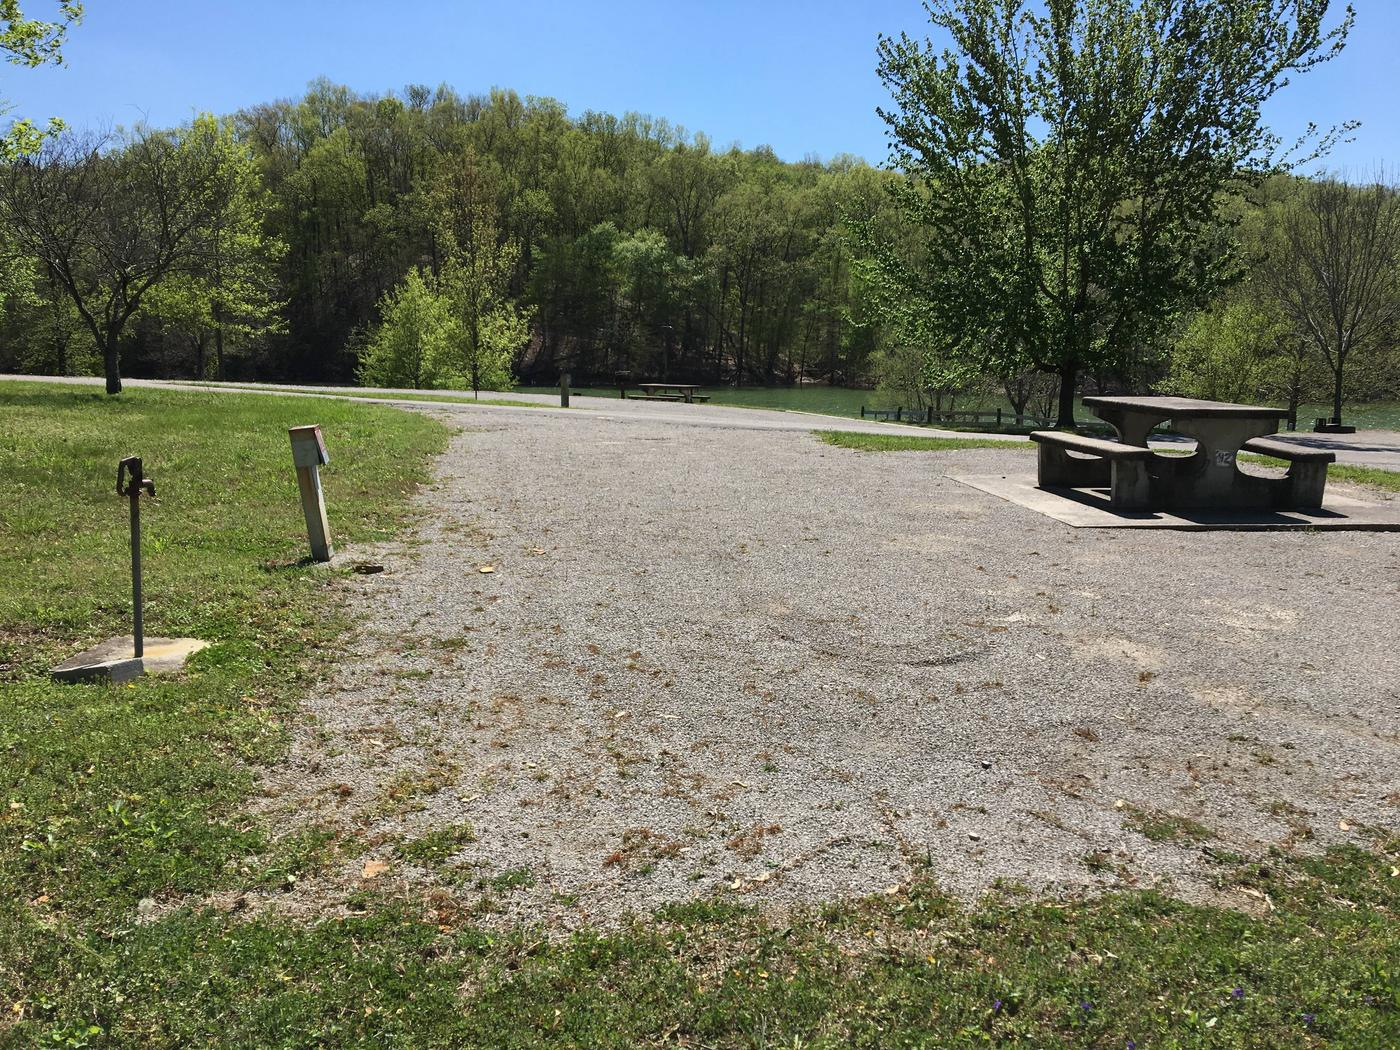 LILLYDALE CAMPGROUND SITE # 92 END VIEW LOCATION FOR RVLILLYDALE CAMPGROUND SITE # 92